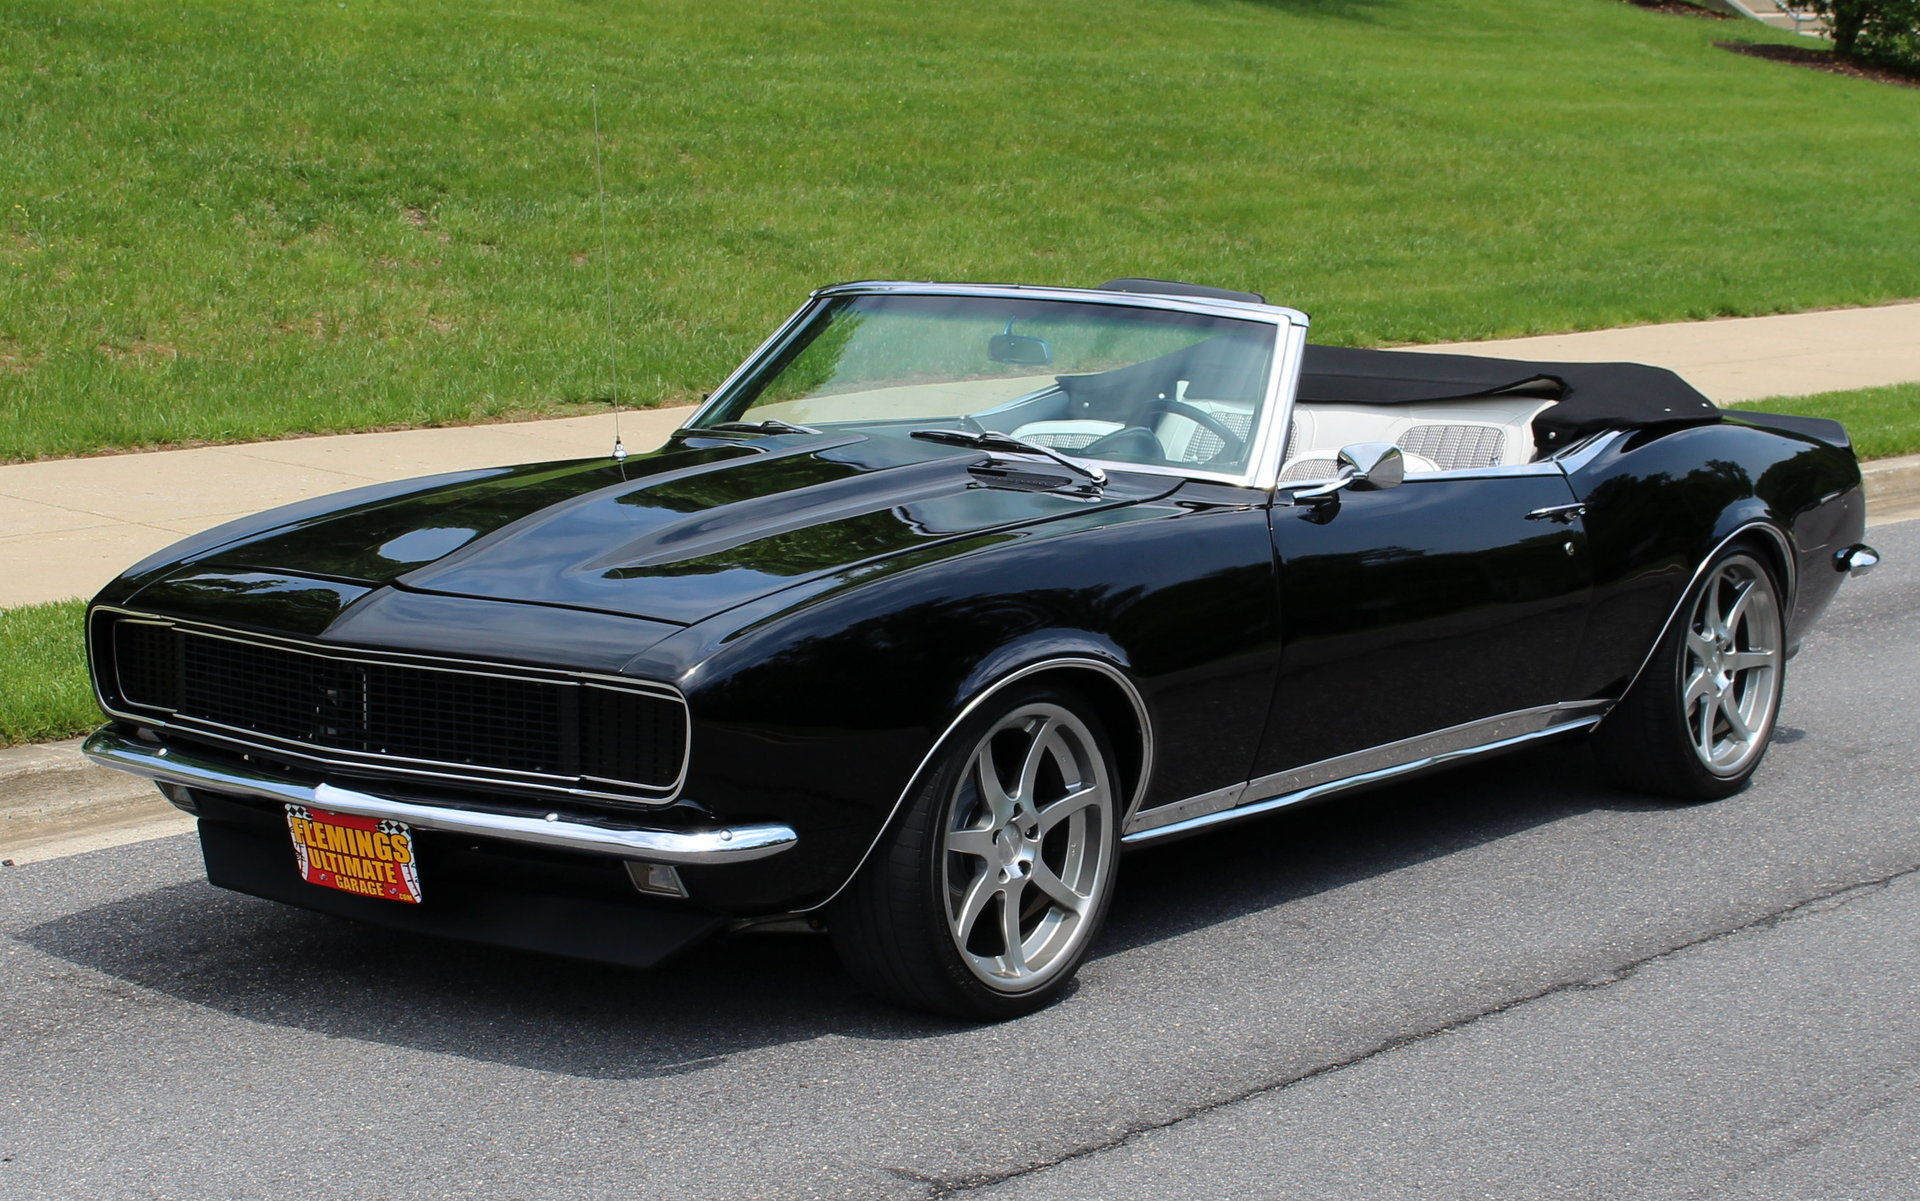 1968 Chevrolet Camaro Berlin Motors Rs Ss For Sale